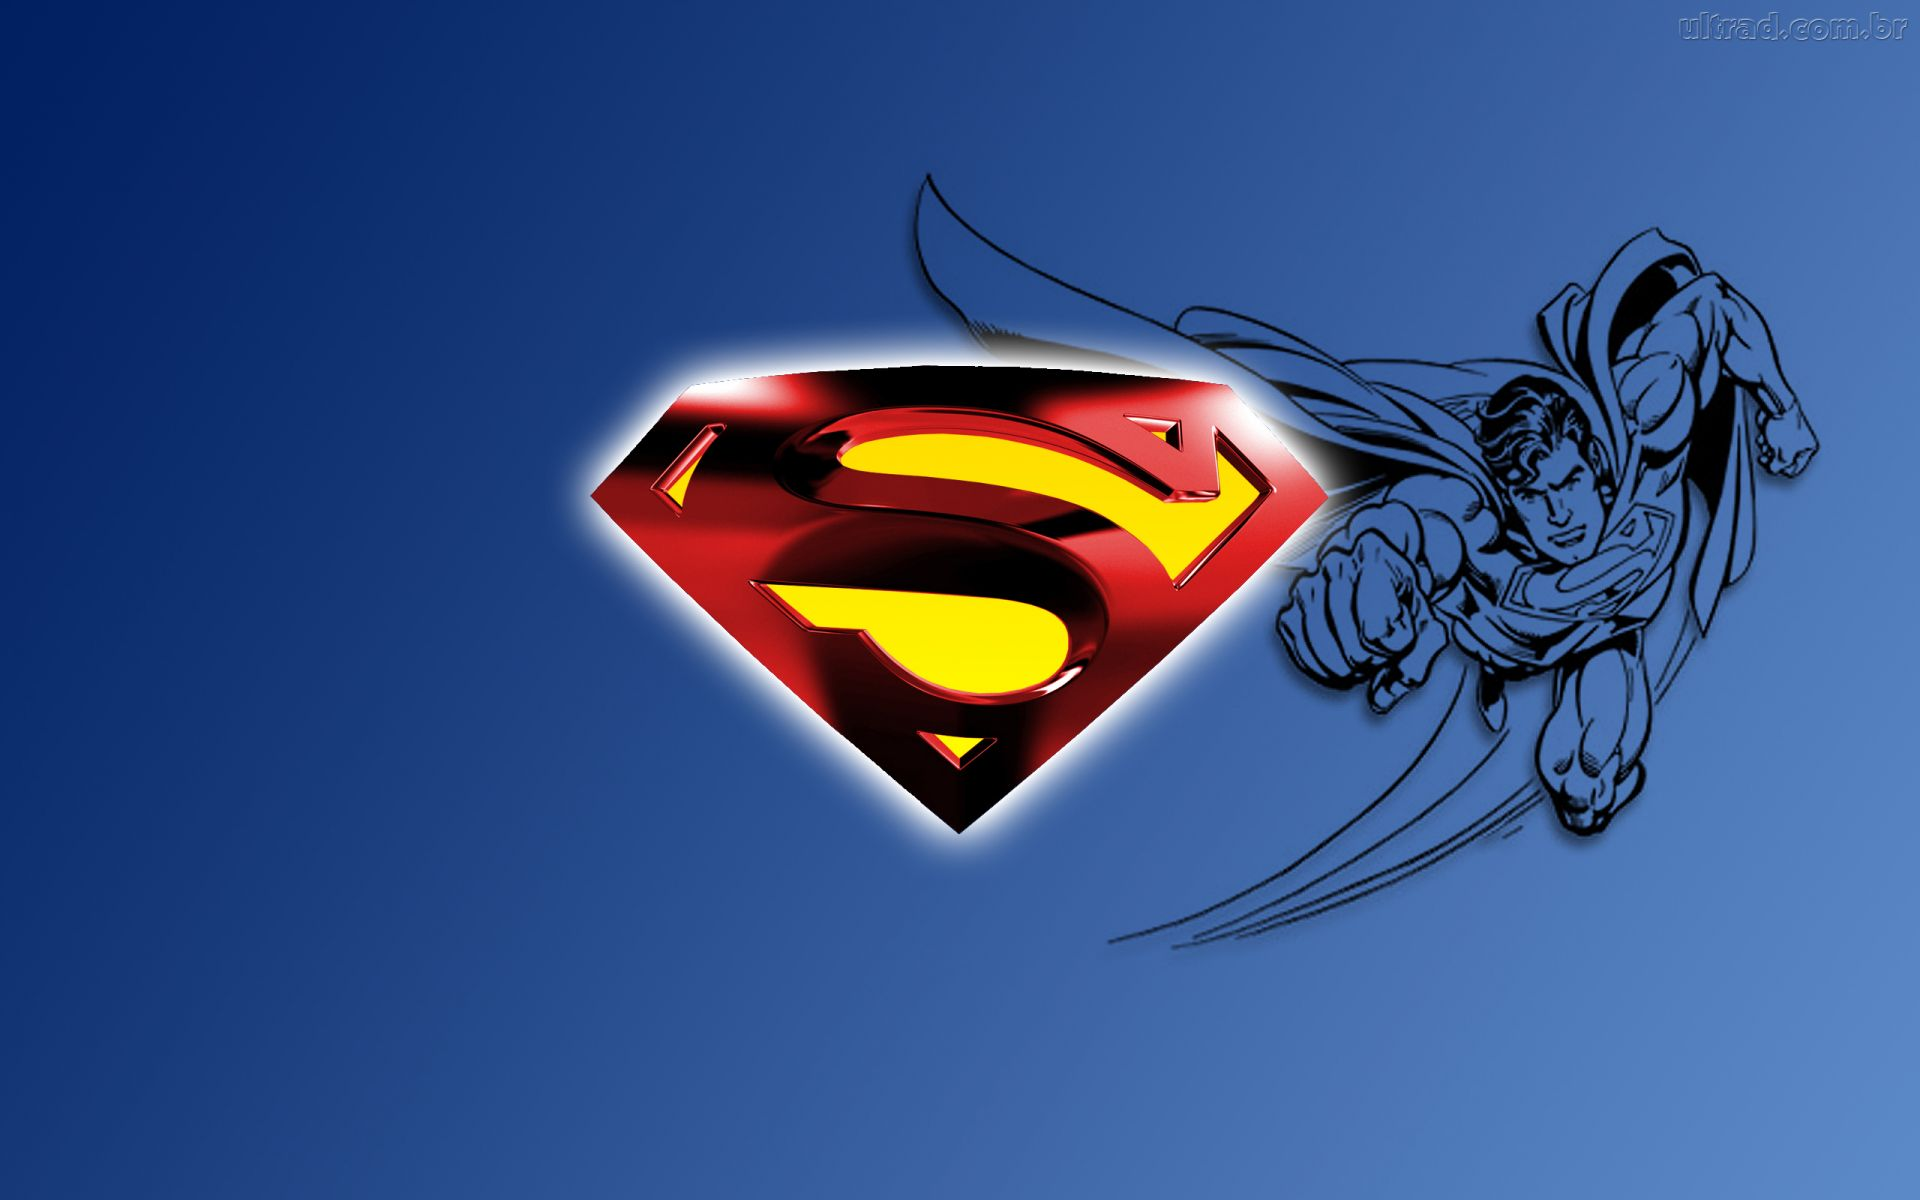 500 superman logo  wallpapers  hd images  vectors free printable superman logo images printable superman logo images